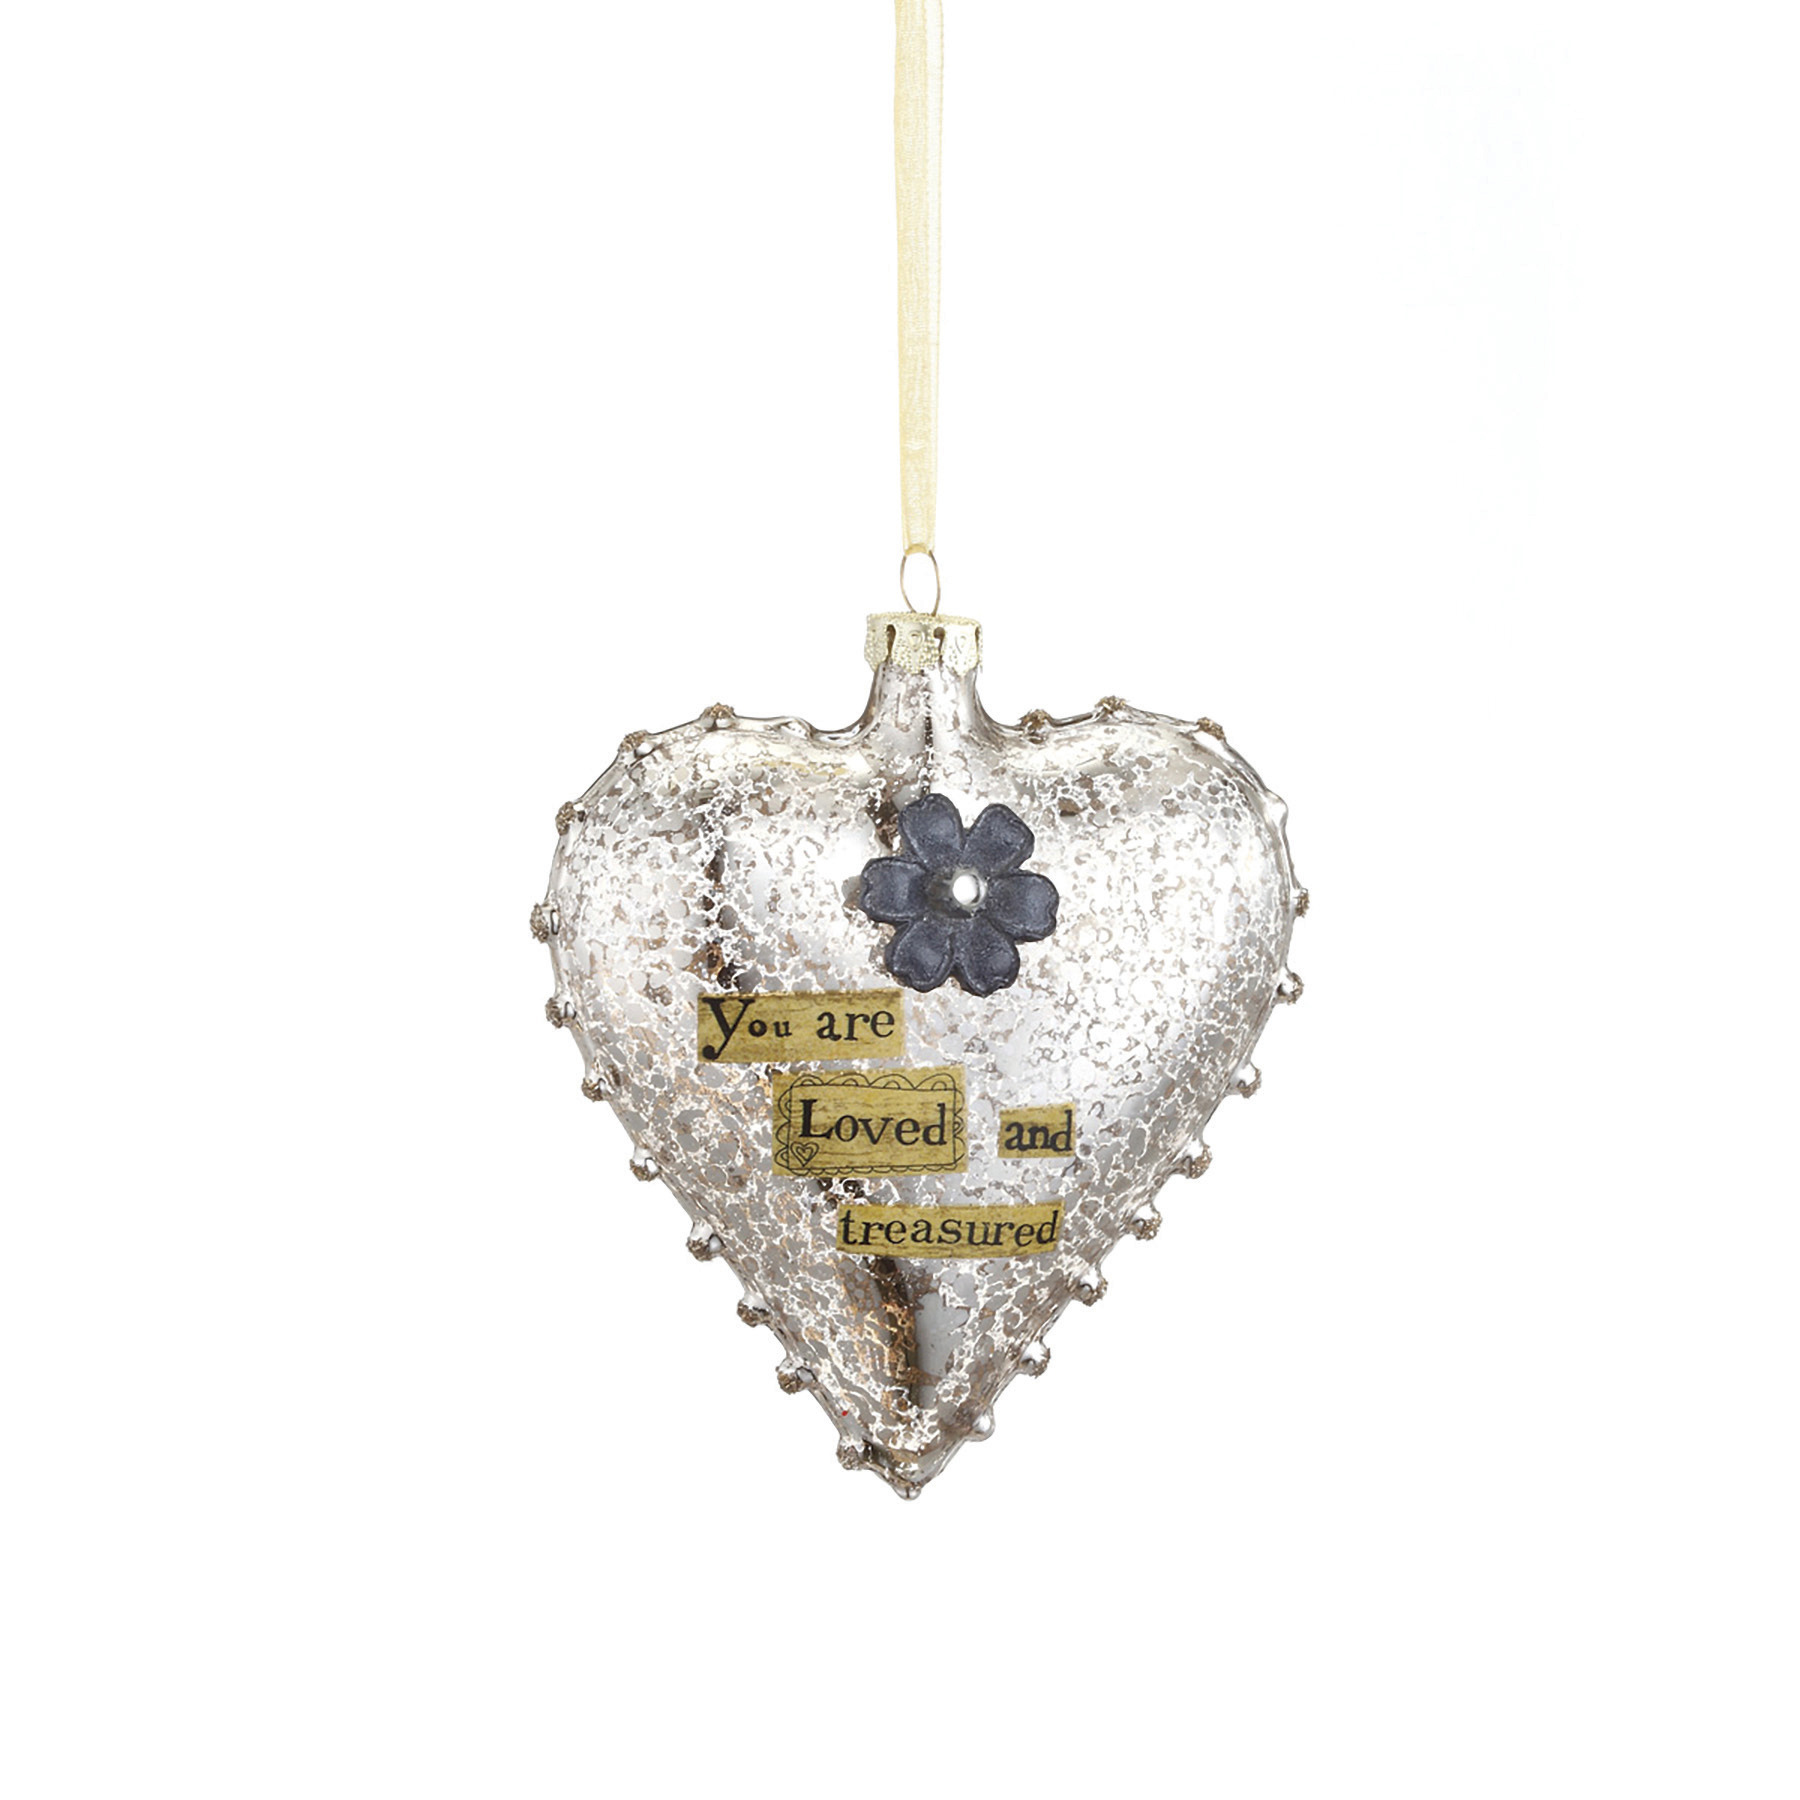 You Are Loved - Heart Ornament